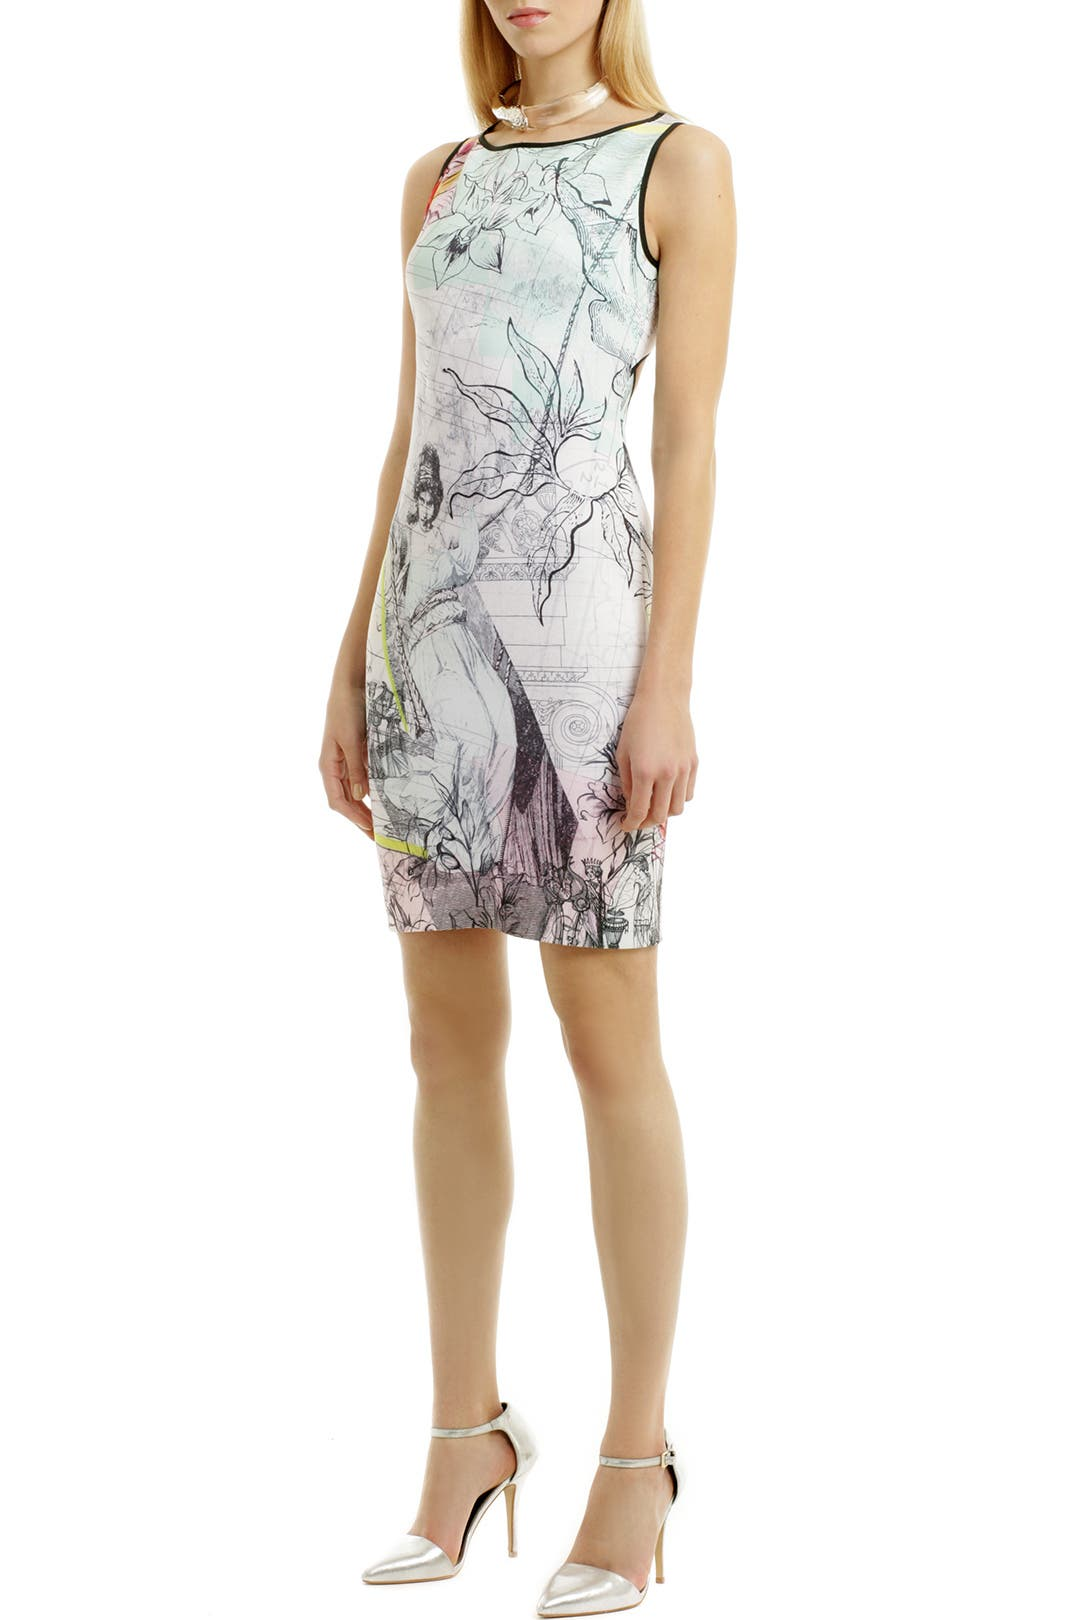 Floral Line Dress by Clover Canyon